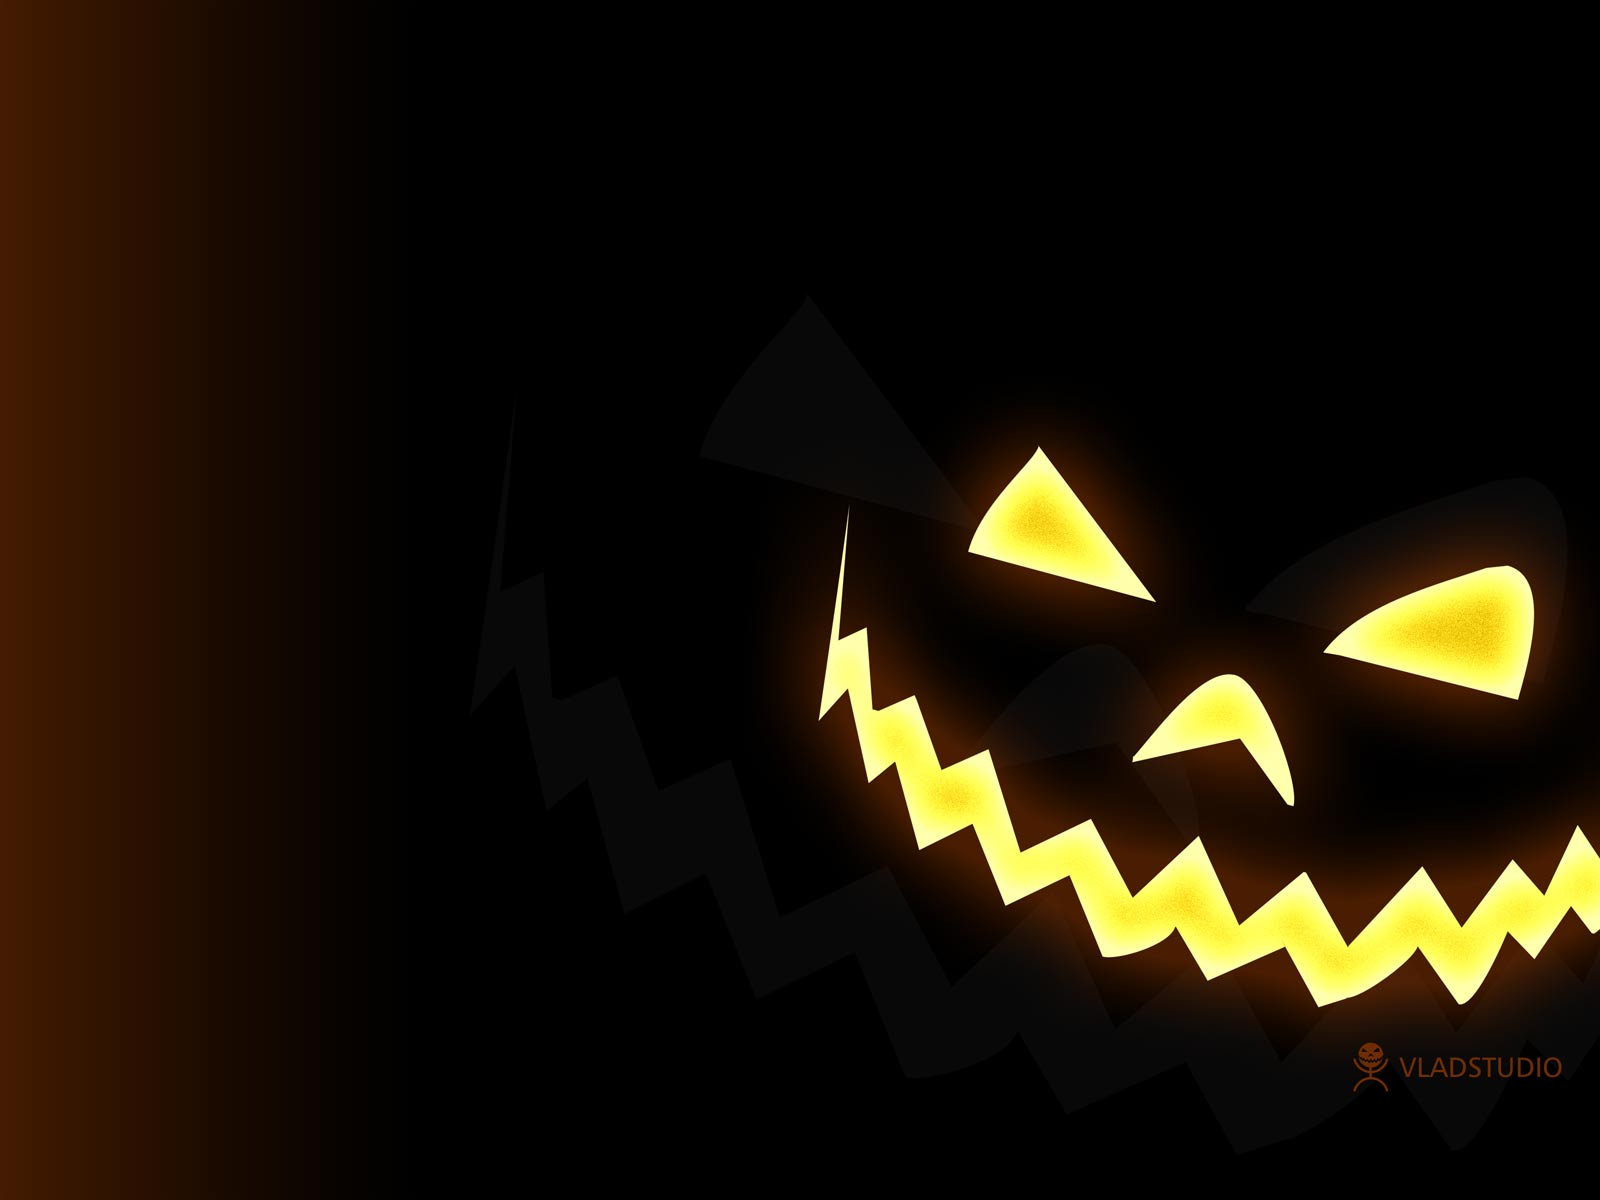 October 2011 Scary Wallpapers 1600x1200